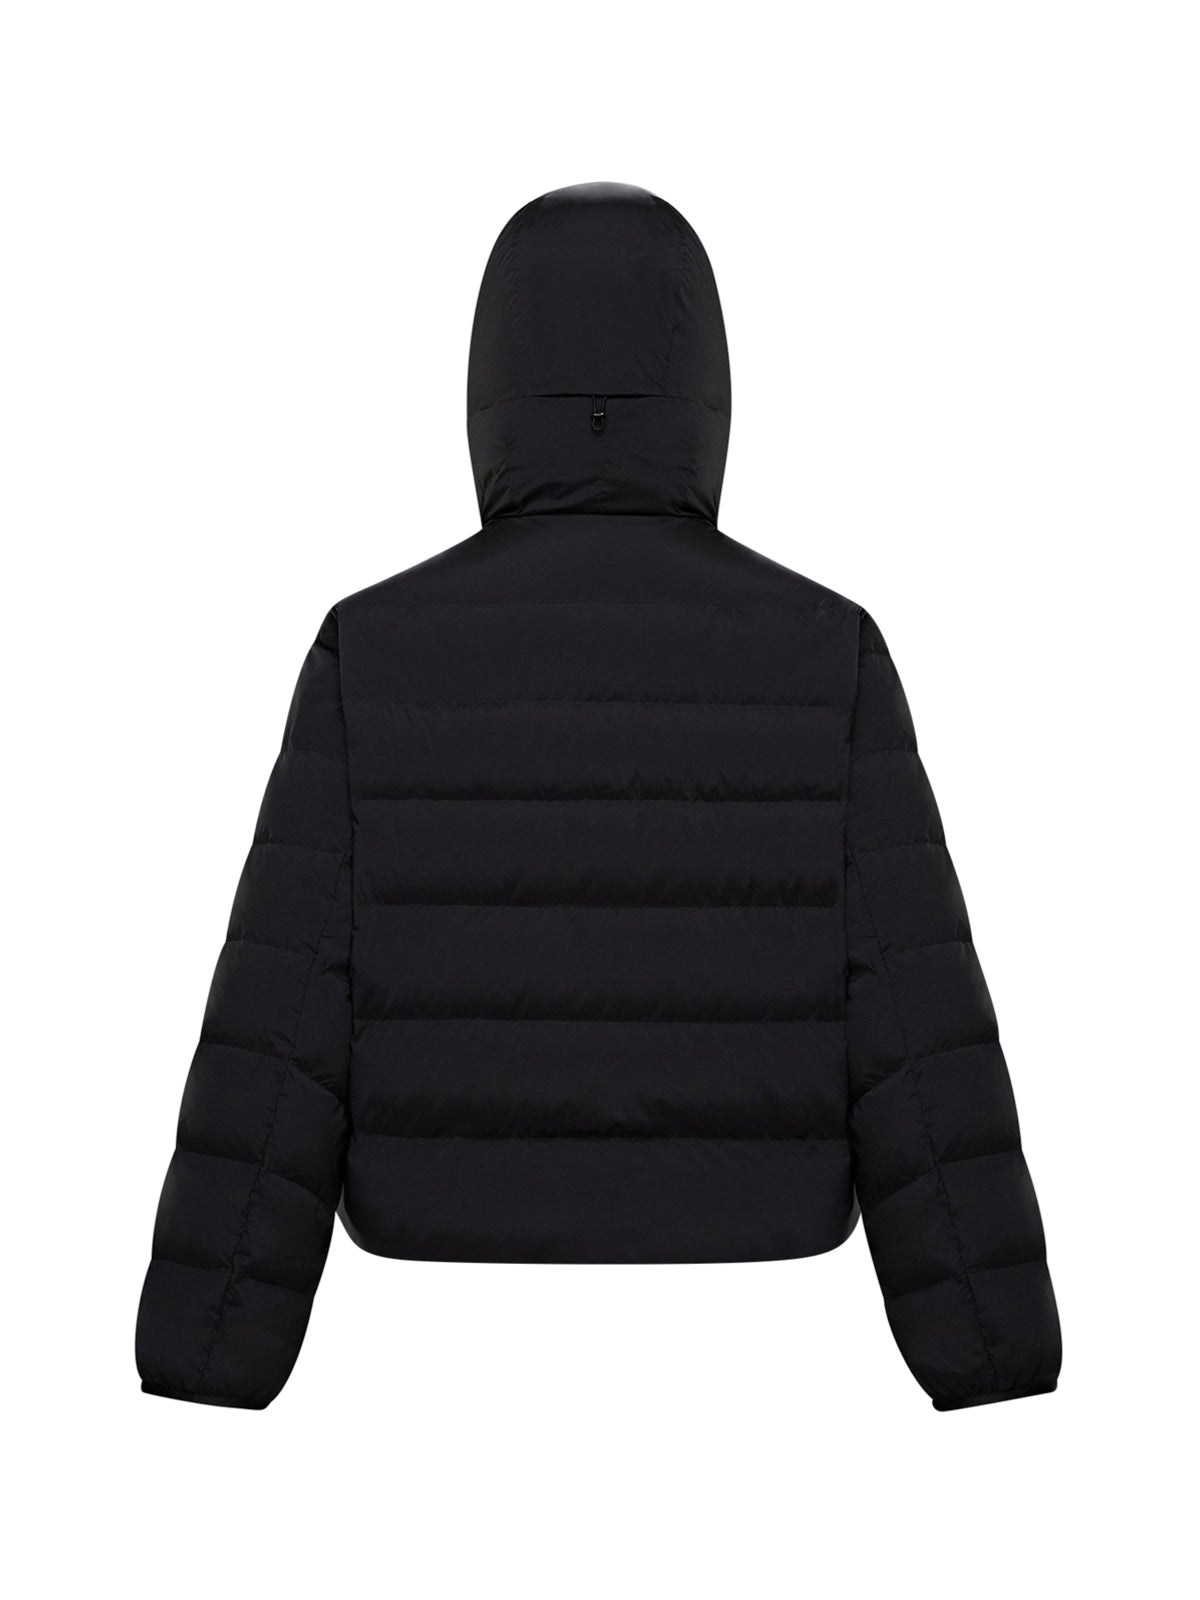 Down jacket with hood and logo